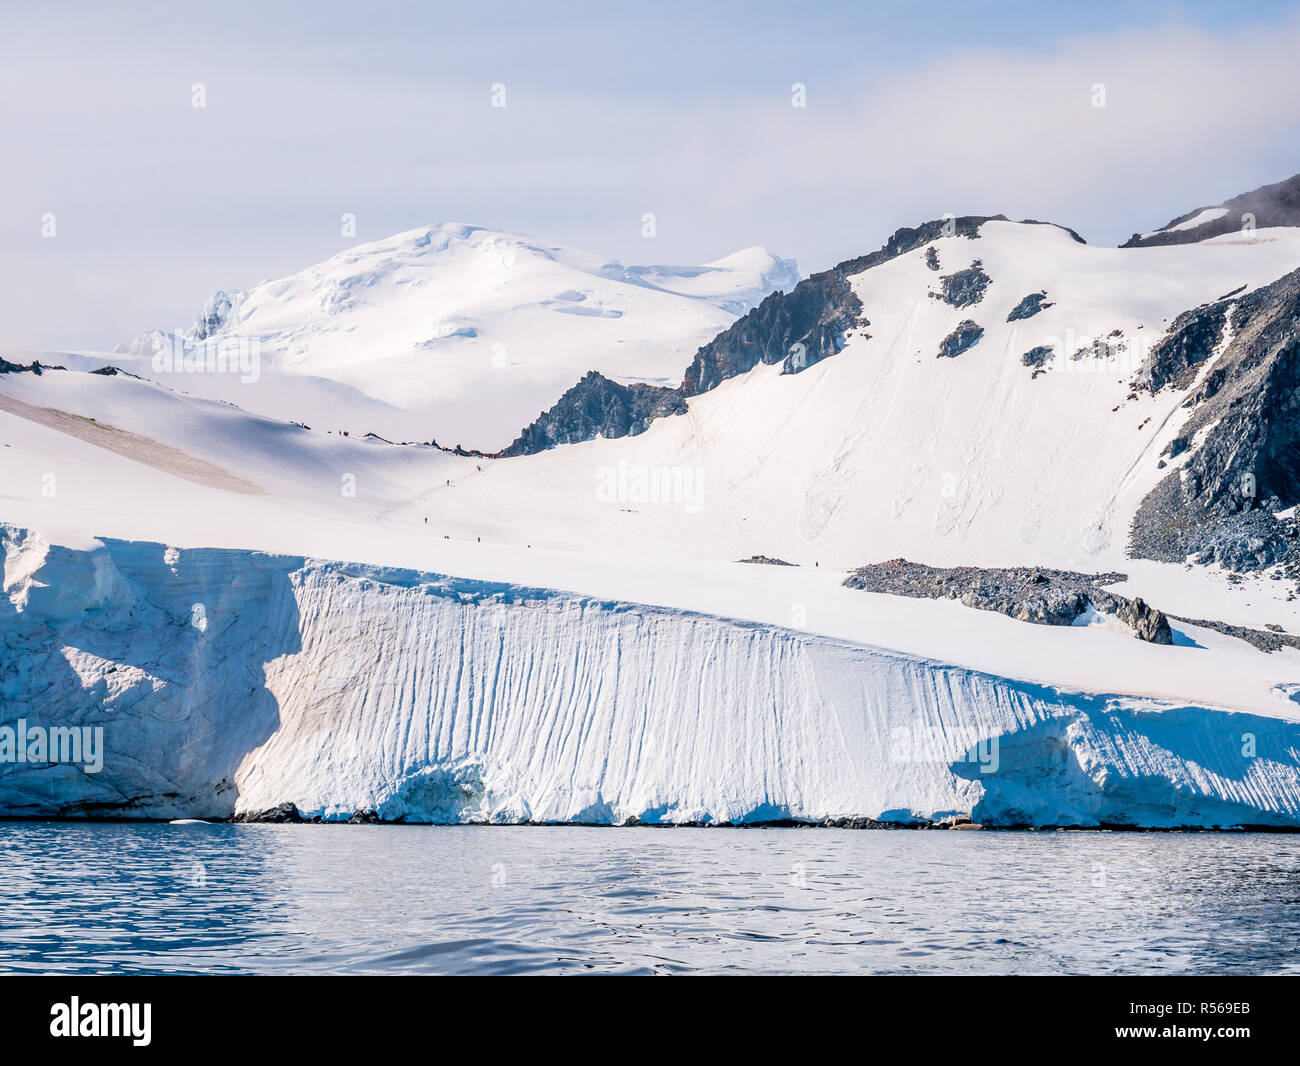 People walking on slope of Spigot Peak on Arctowski peninsula, Antarctic Peninsula, Antarctica Stock Photo